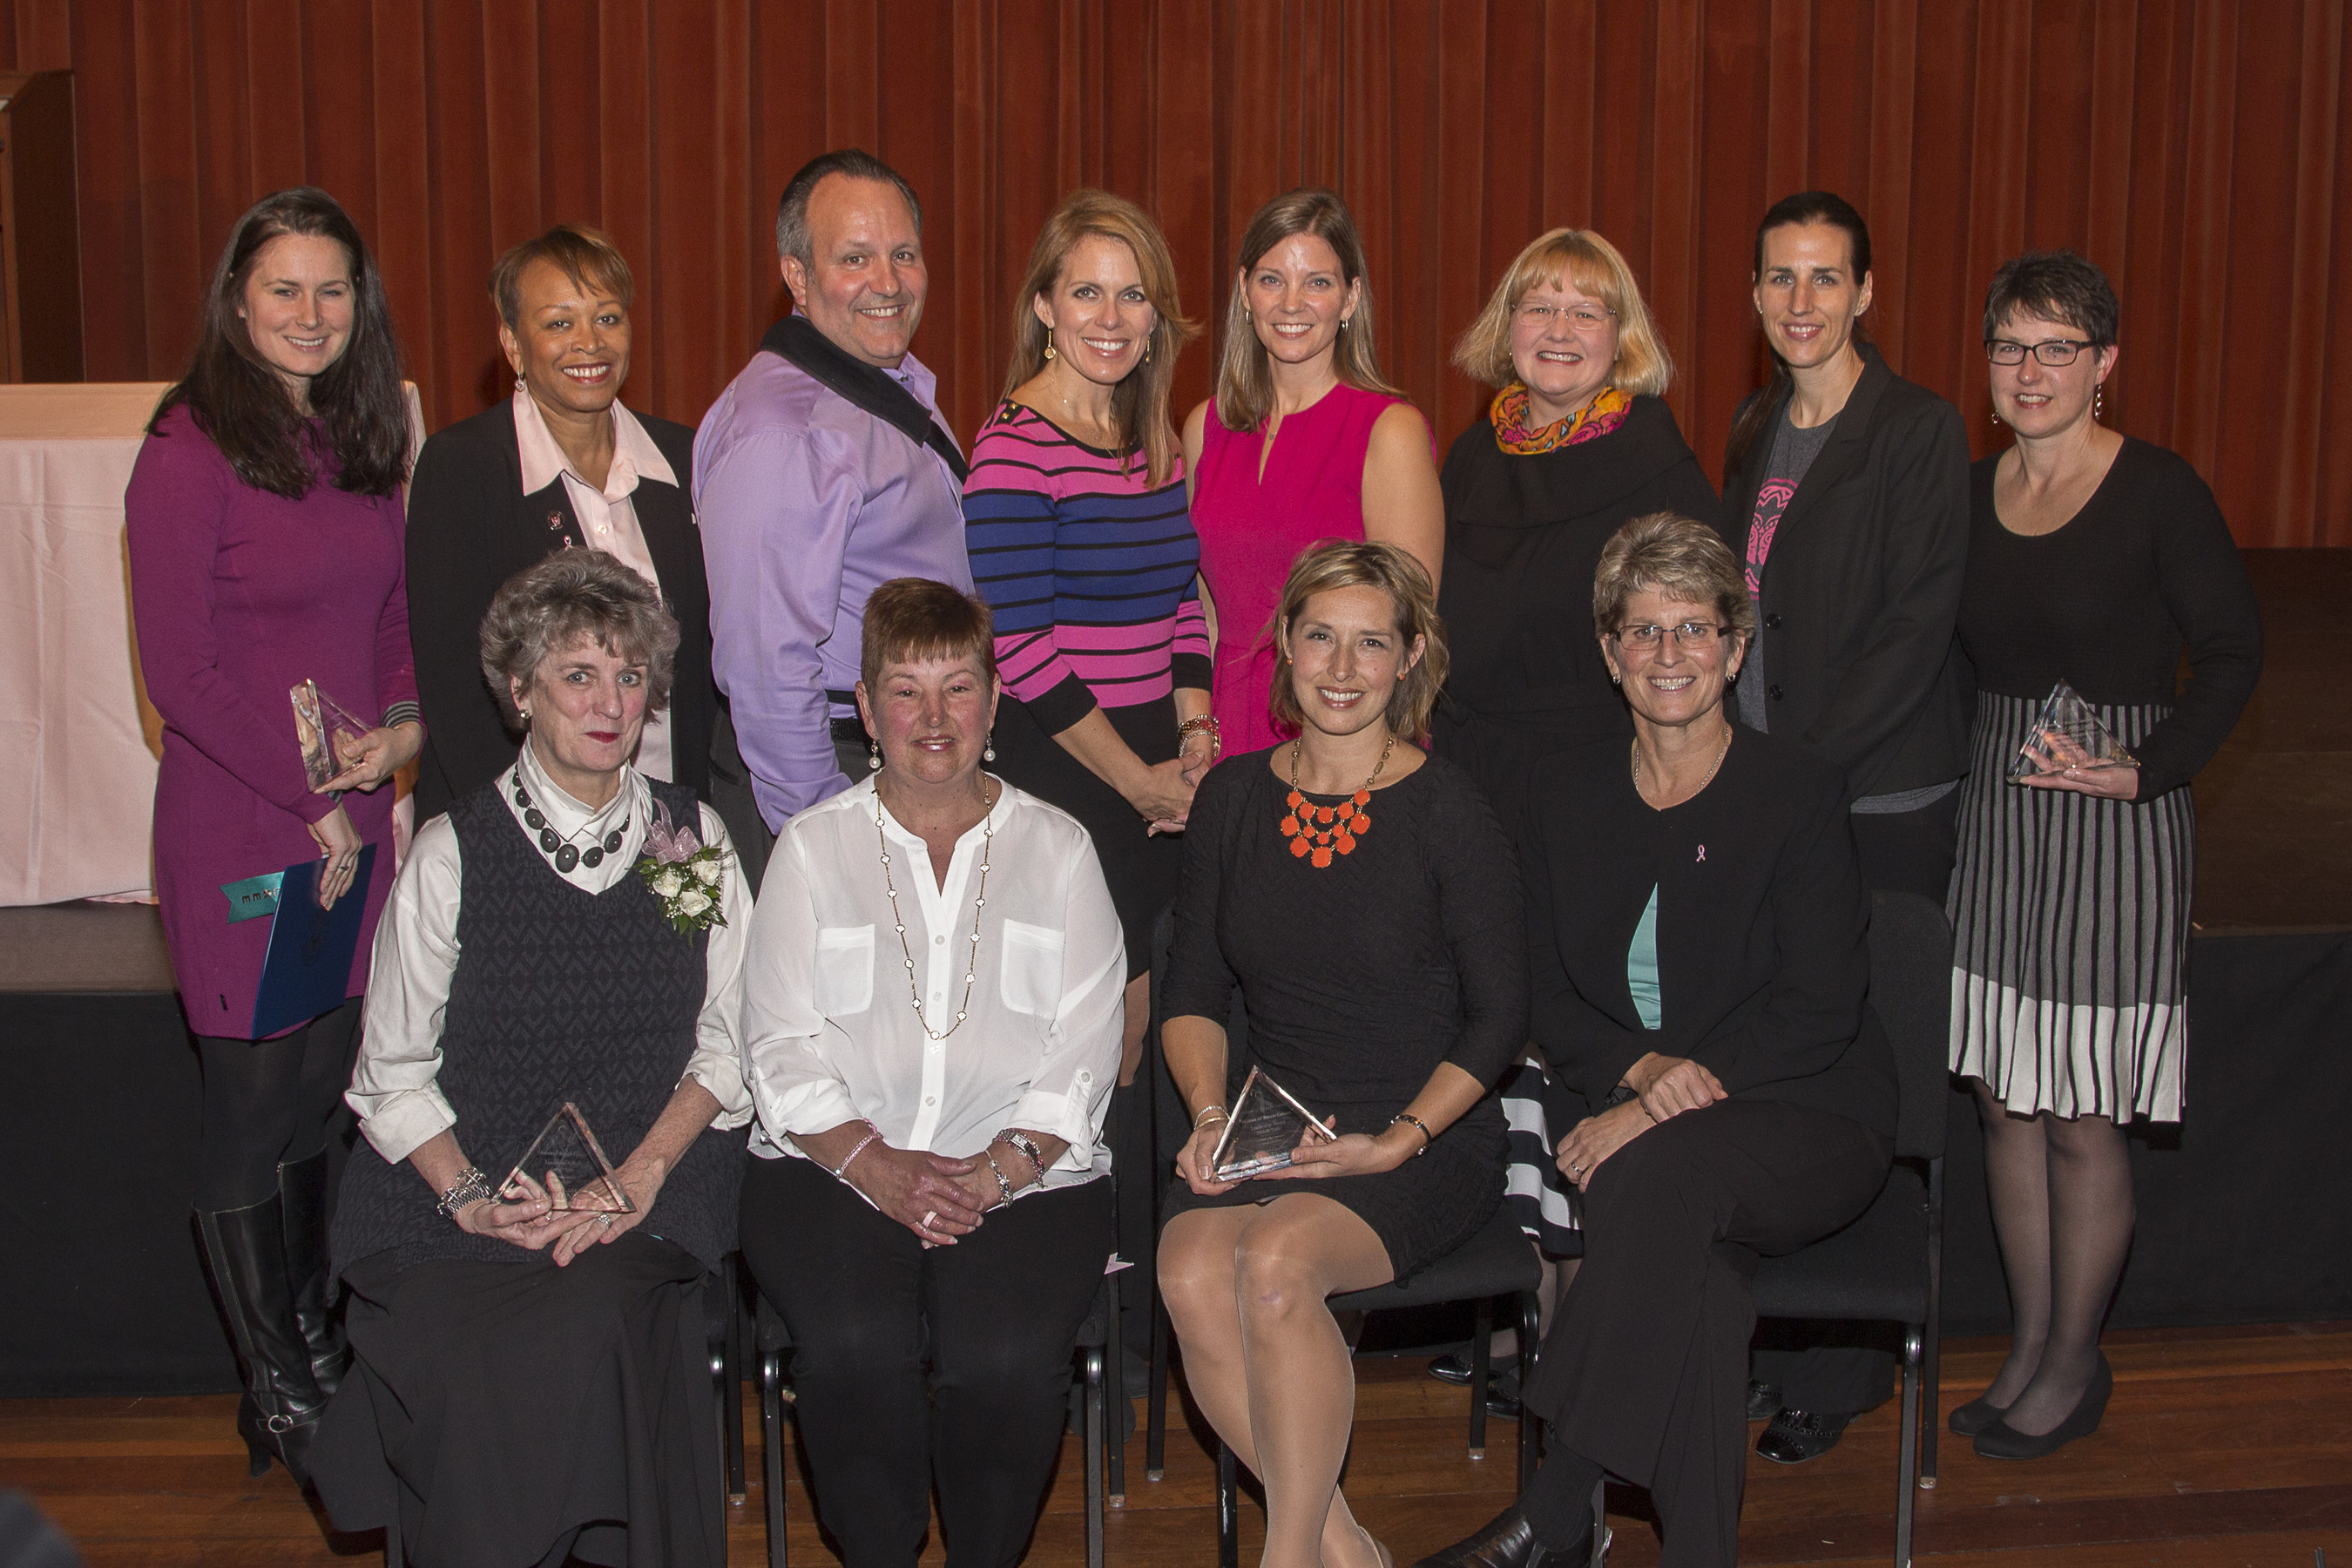 Introducing the Barbara Ann Karmanos Cancer Institute's 2015 Heroes of Breast Cancer Awardees: (back row from left) Courtney Welch, representing FOX Sports Detroit; Beverly Hibbler, principal, Detroit International Academy for Young Women; Bob Binson, mayor, City of Center Line, Mich.; Deena Centofanti, anchor/reporter, WJBK FOX 2; Michele Cote, Ph.D., Karmanos Cancer Institute/Wayne State University; Kyle Huber, volunteer, Ford Motor Company; Tracy Magee, Ford Warriors in Pink; Maria Gird, R.N., Karmanos Cancer Center; (front row from left) Mary Liz Curtin, owner, Leon & Lulu; Kathy Mulheron, R.N.; Michelle Tubbs, Young Survival Coalition; Ann Cramer, sister of the late Kathryn Cramer, M.D.